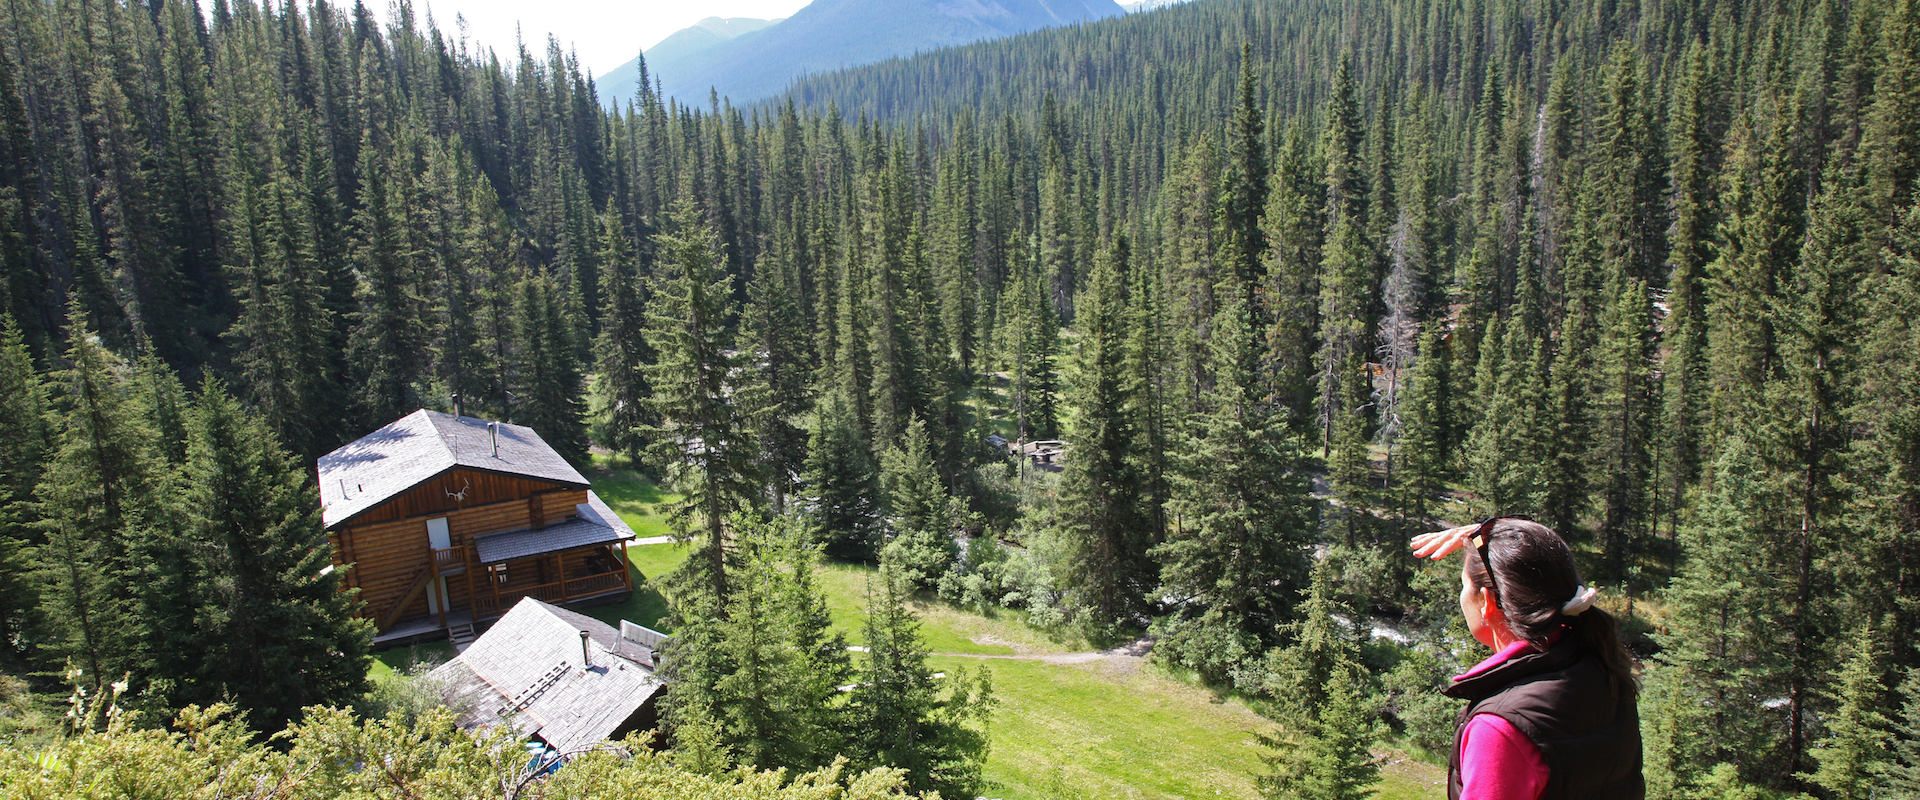 Sundance Lodge Backcountry Pack Trip in Banff, Canadian Rockies with Banff Trail Riders